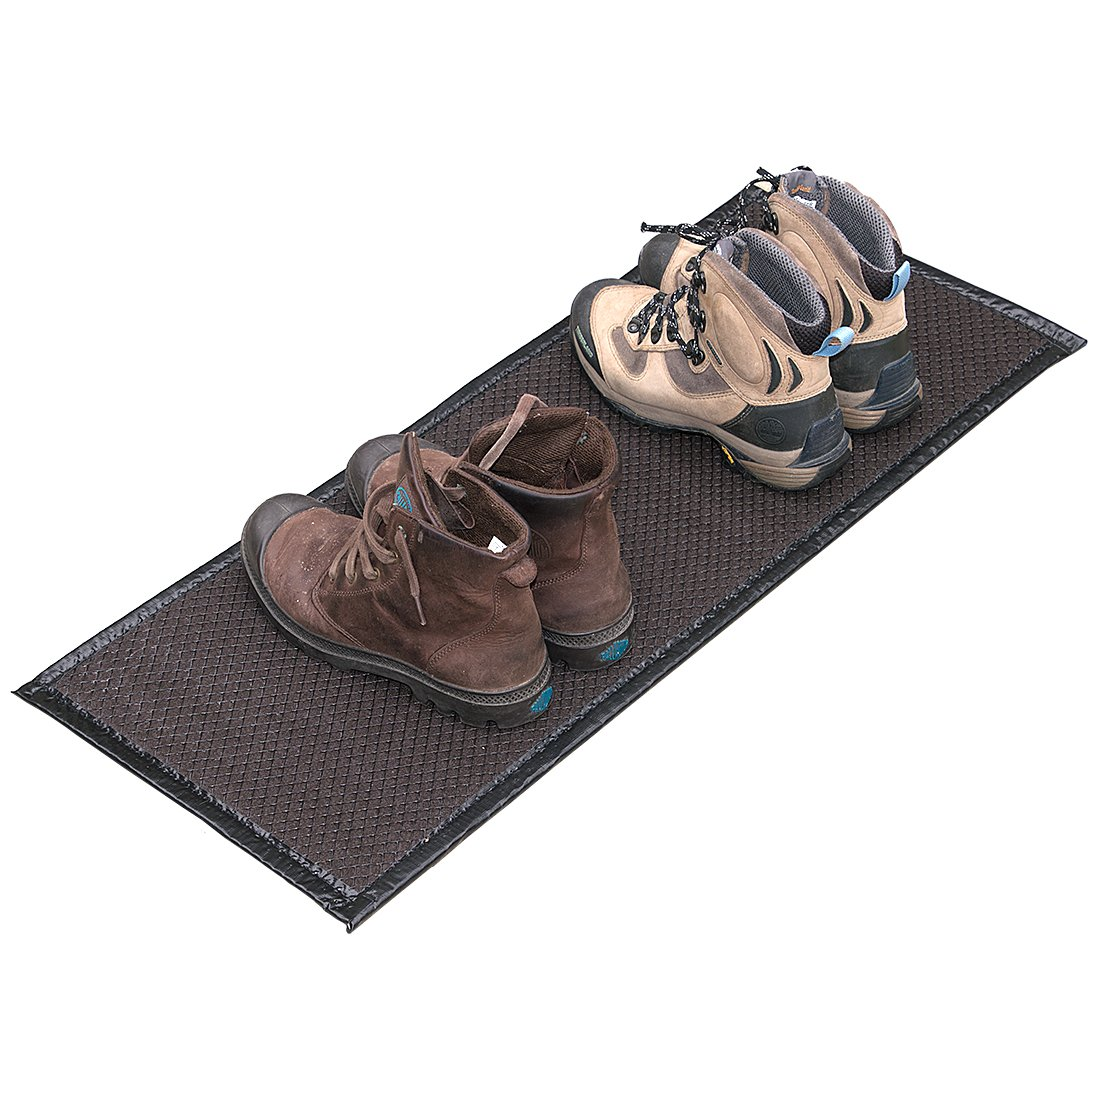 Just Suk It Up.com, Absorbent Boot Mat - 13 x 32 in - Brown